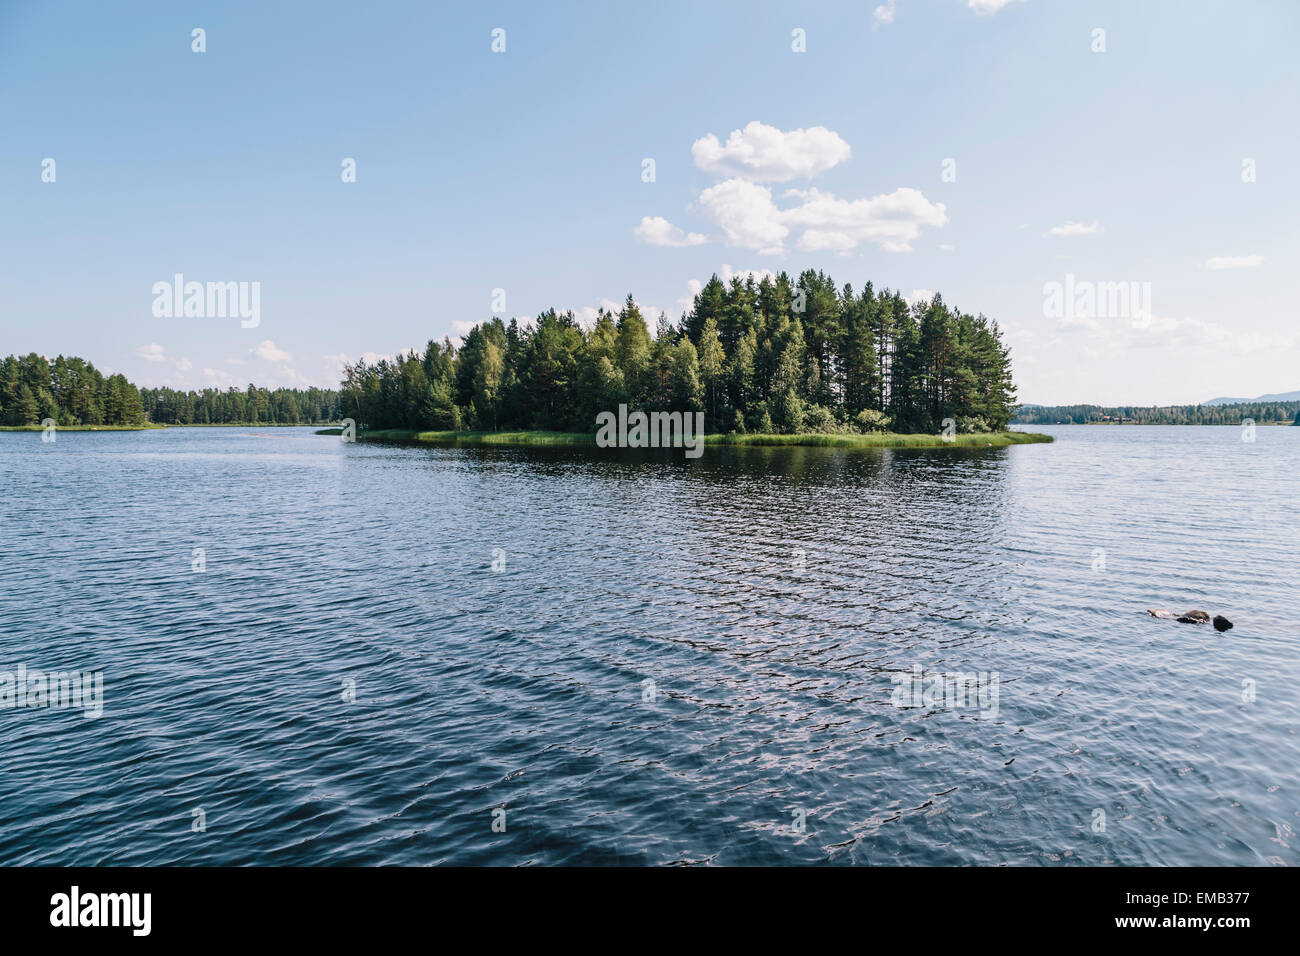 Lake Siljan in Mora, Dalarna County, Sweden Stock Photo